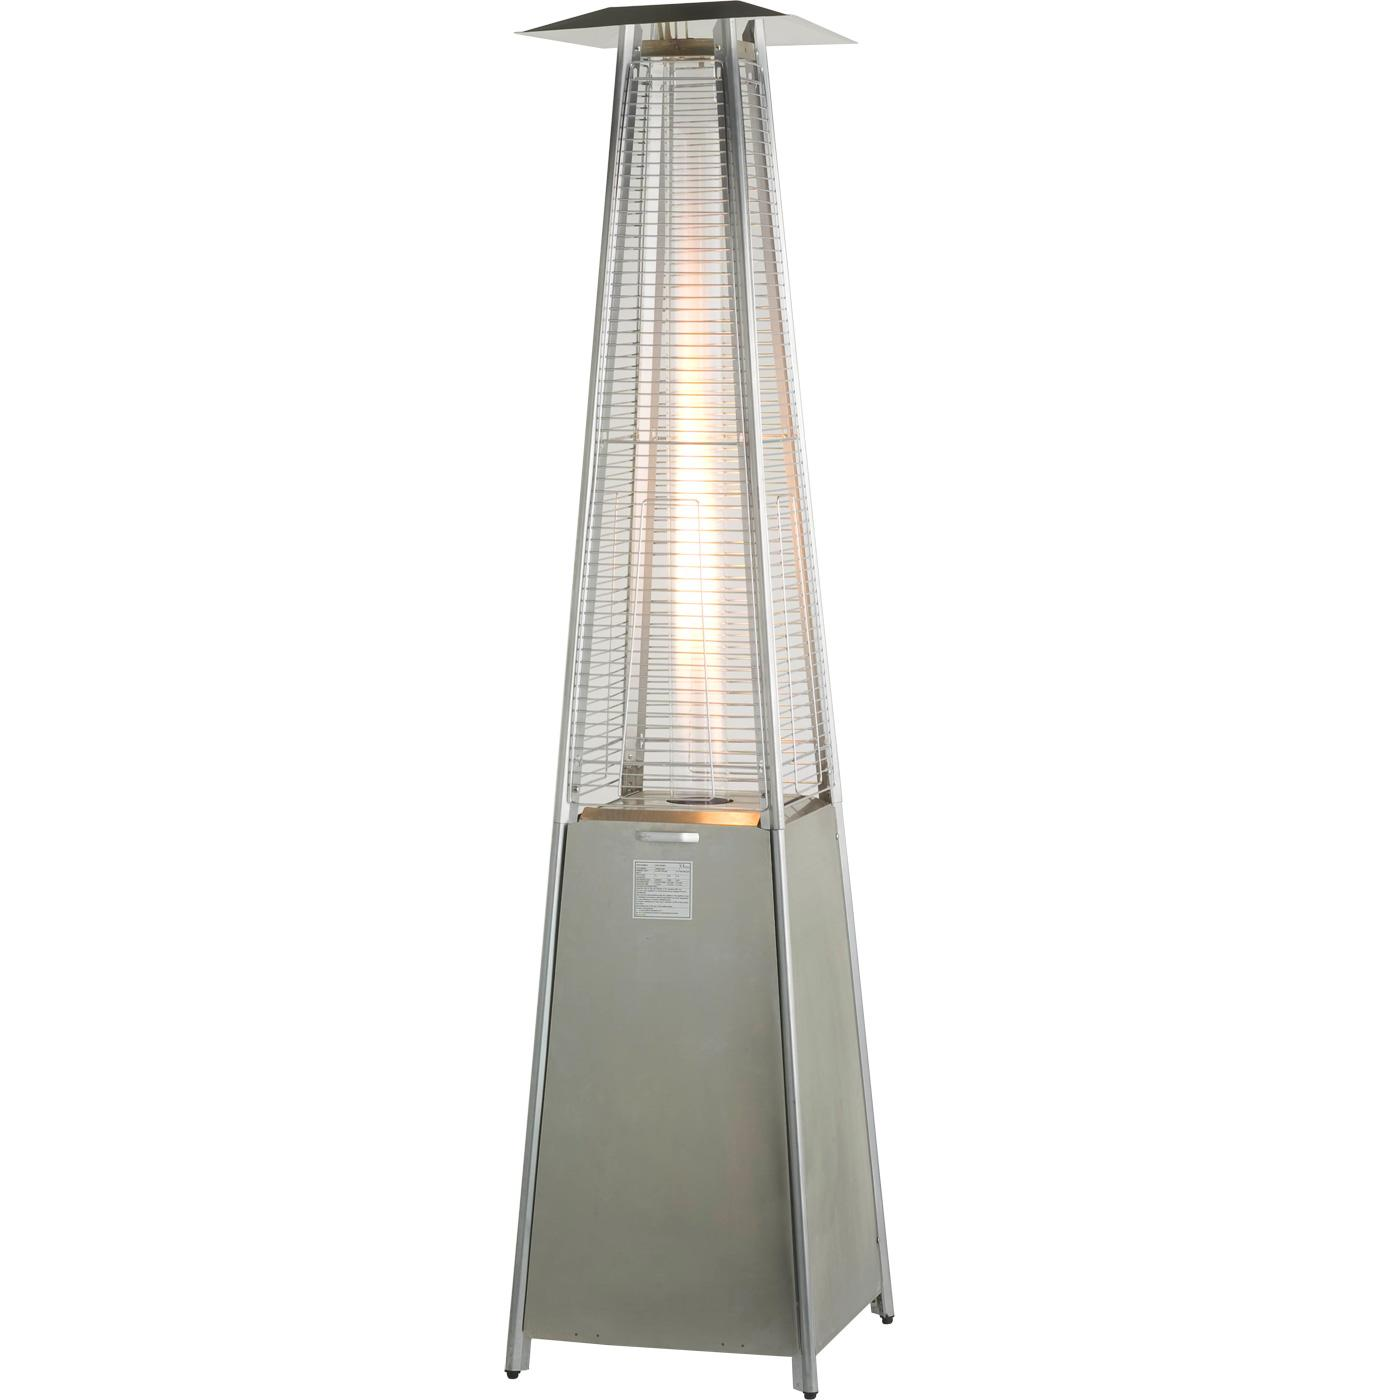 Athena Stainless Steel Flame Gas Patio Heater  Heat Outdoors